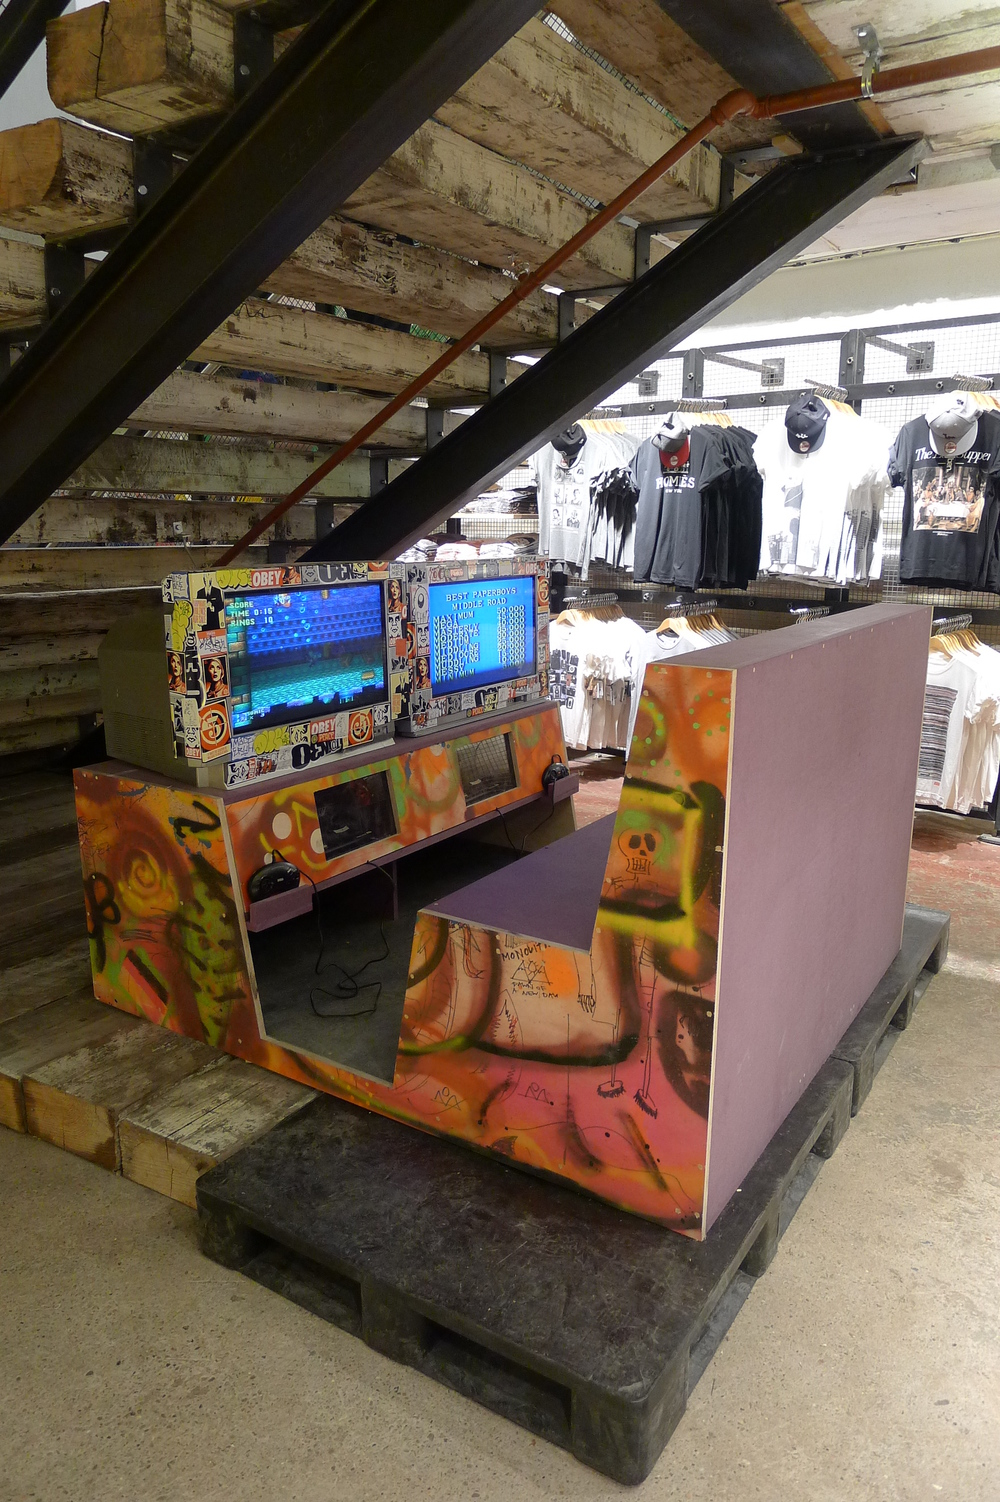 Urban Outfitters Europe: Retro Videogame Station